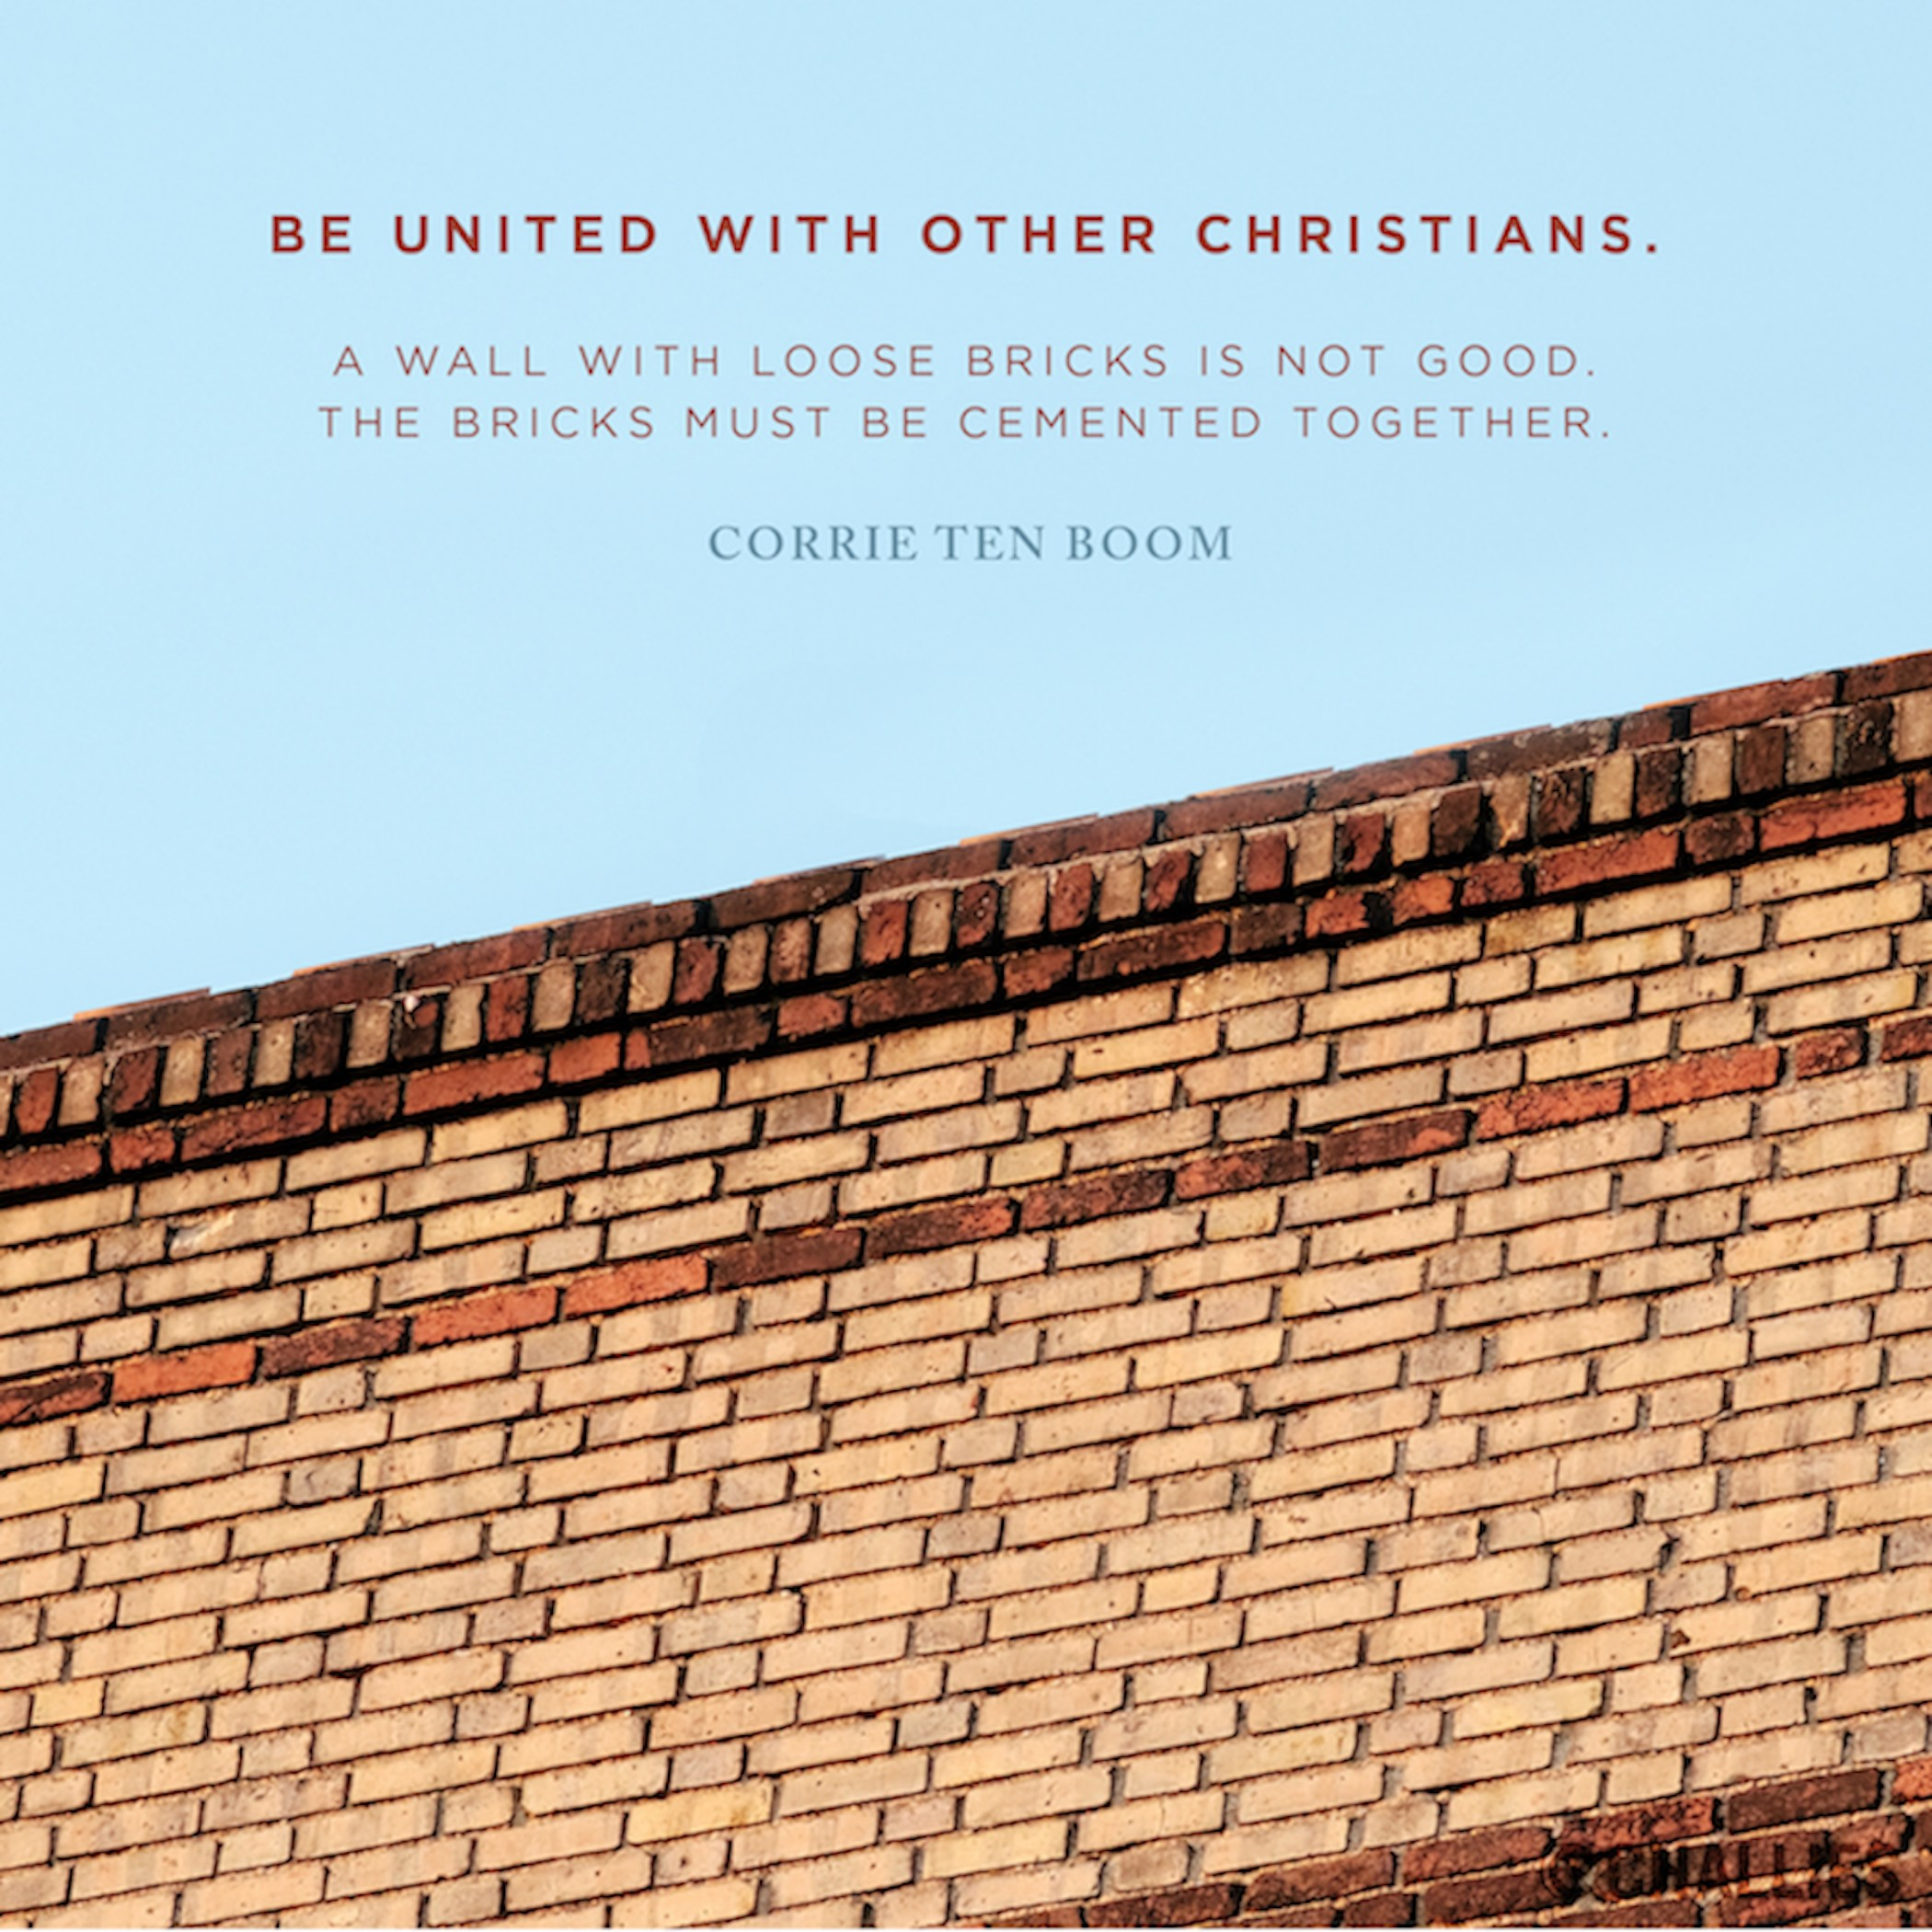 Be united with other Christians A wall with loose bricks is not